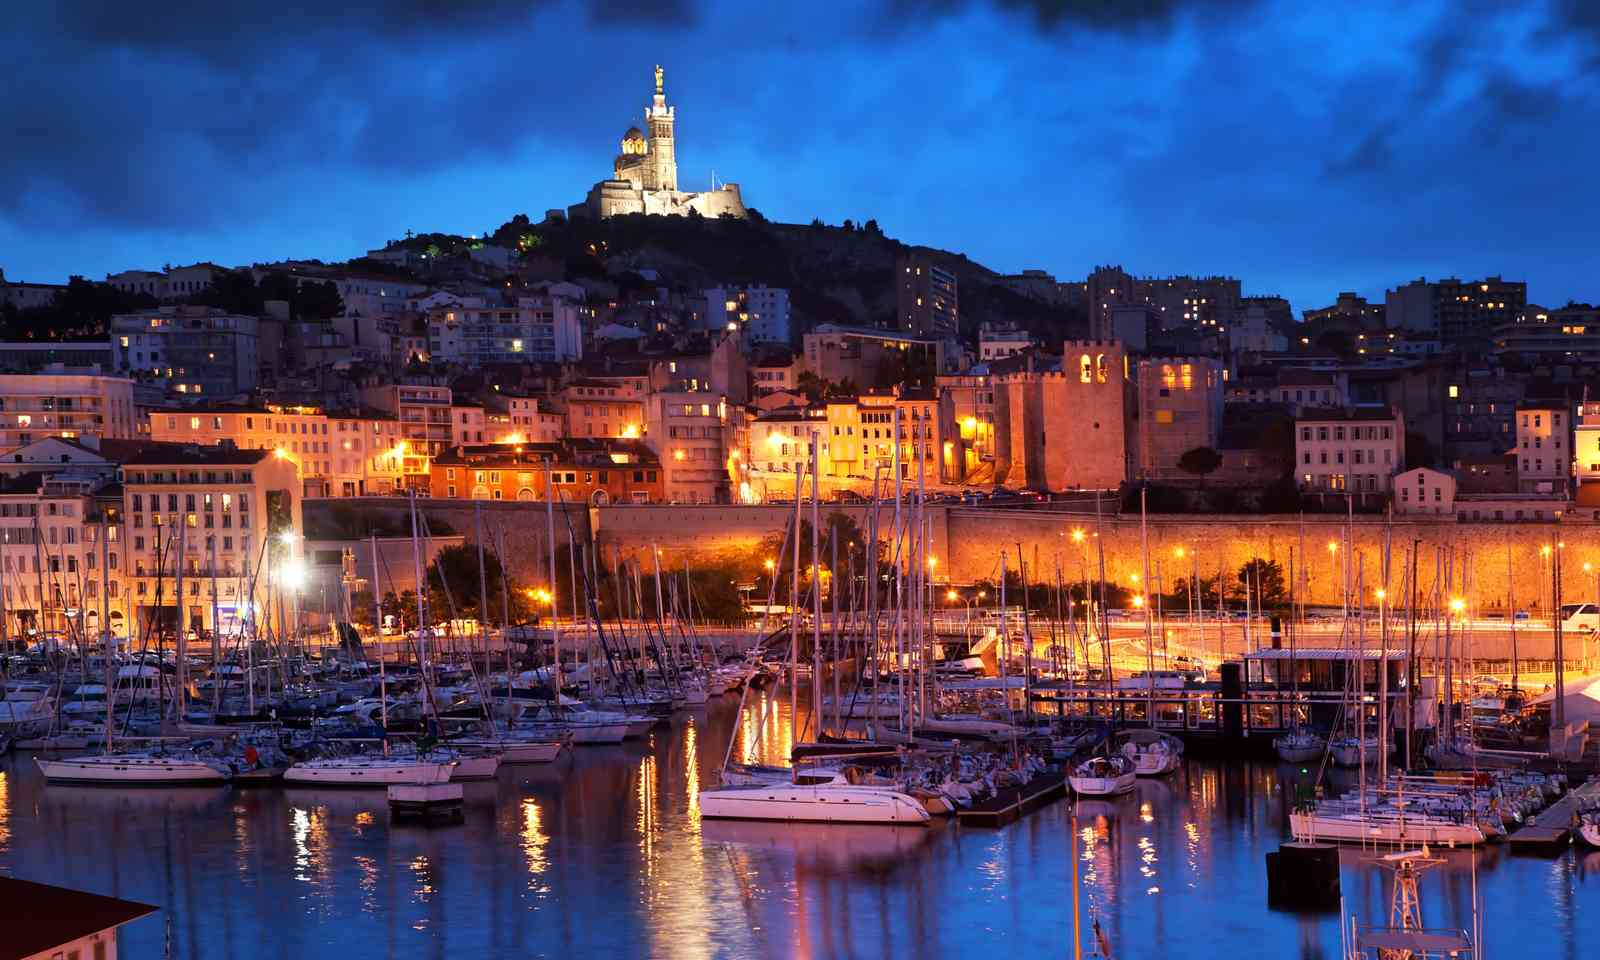 Marseille at night (Dreamstime)